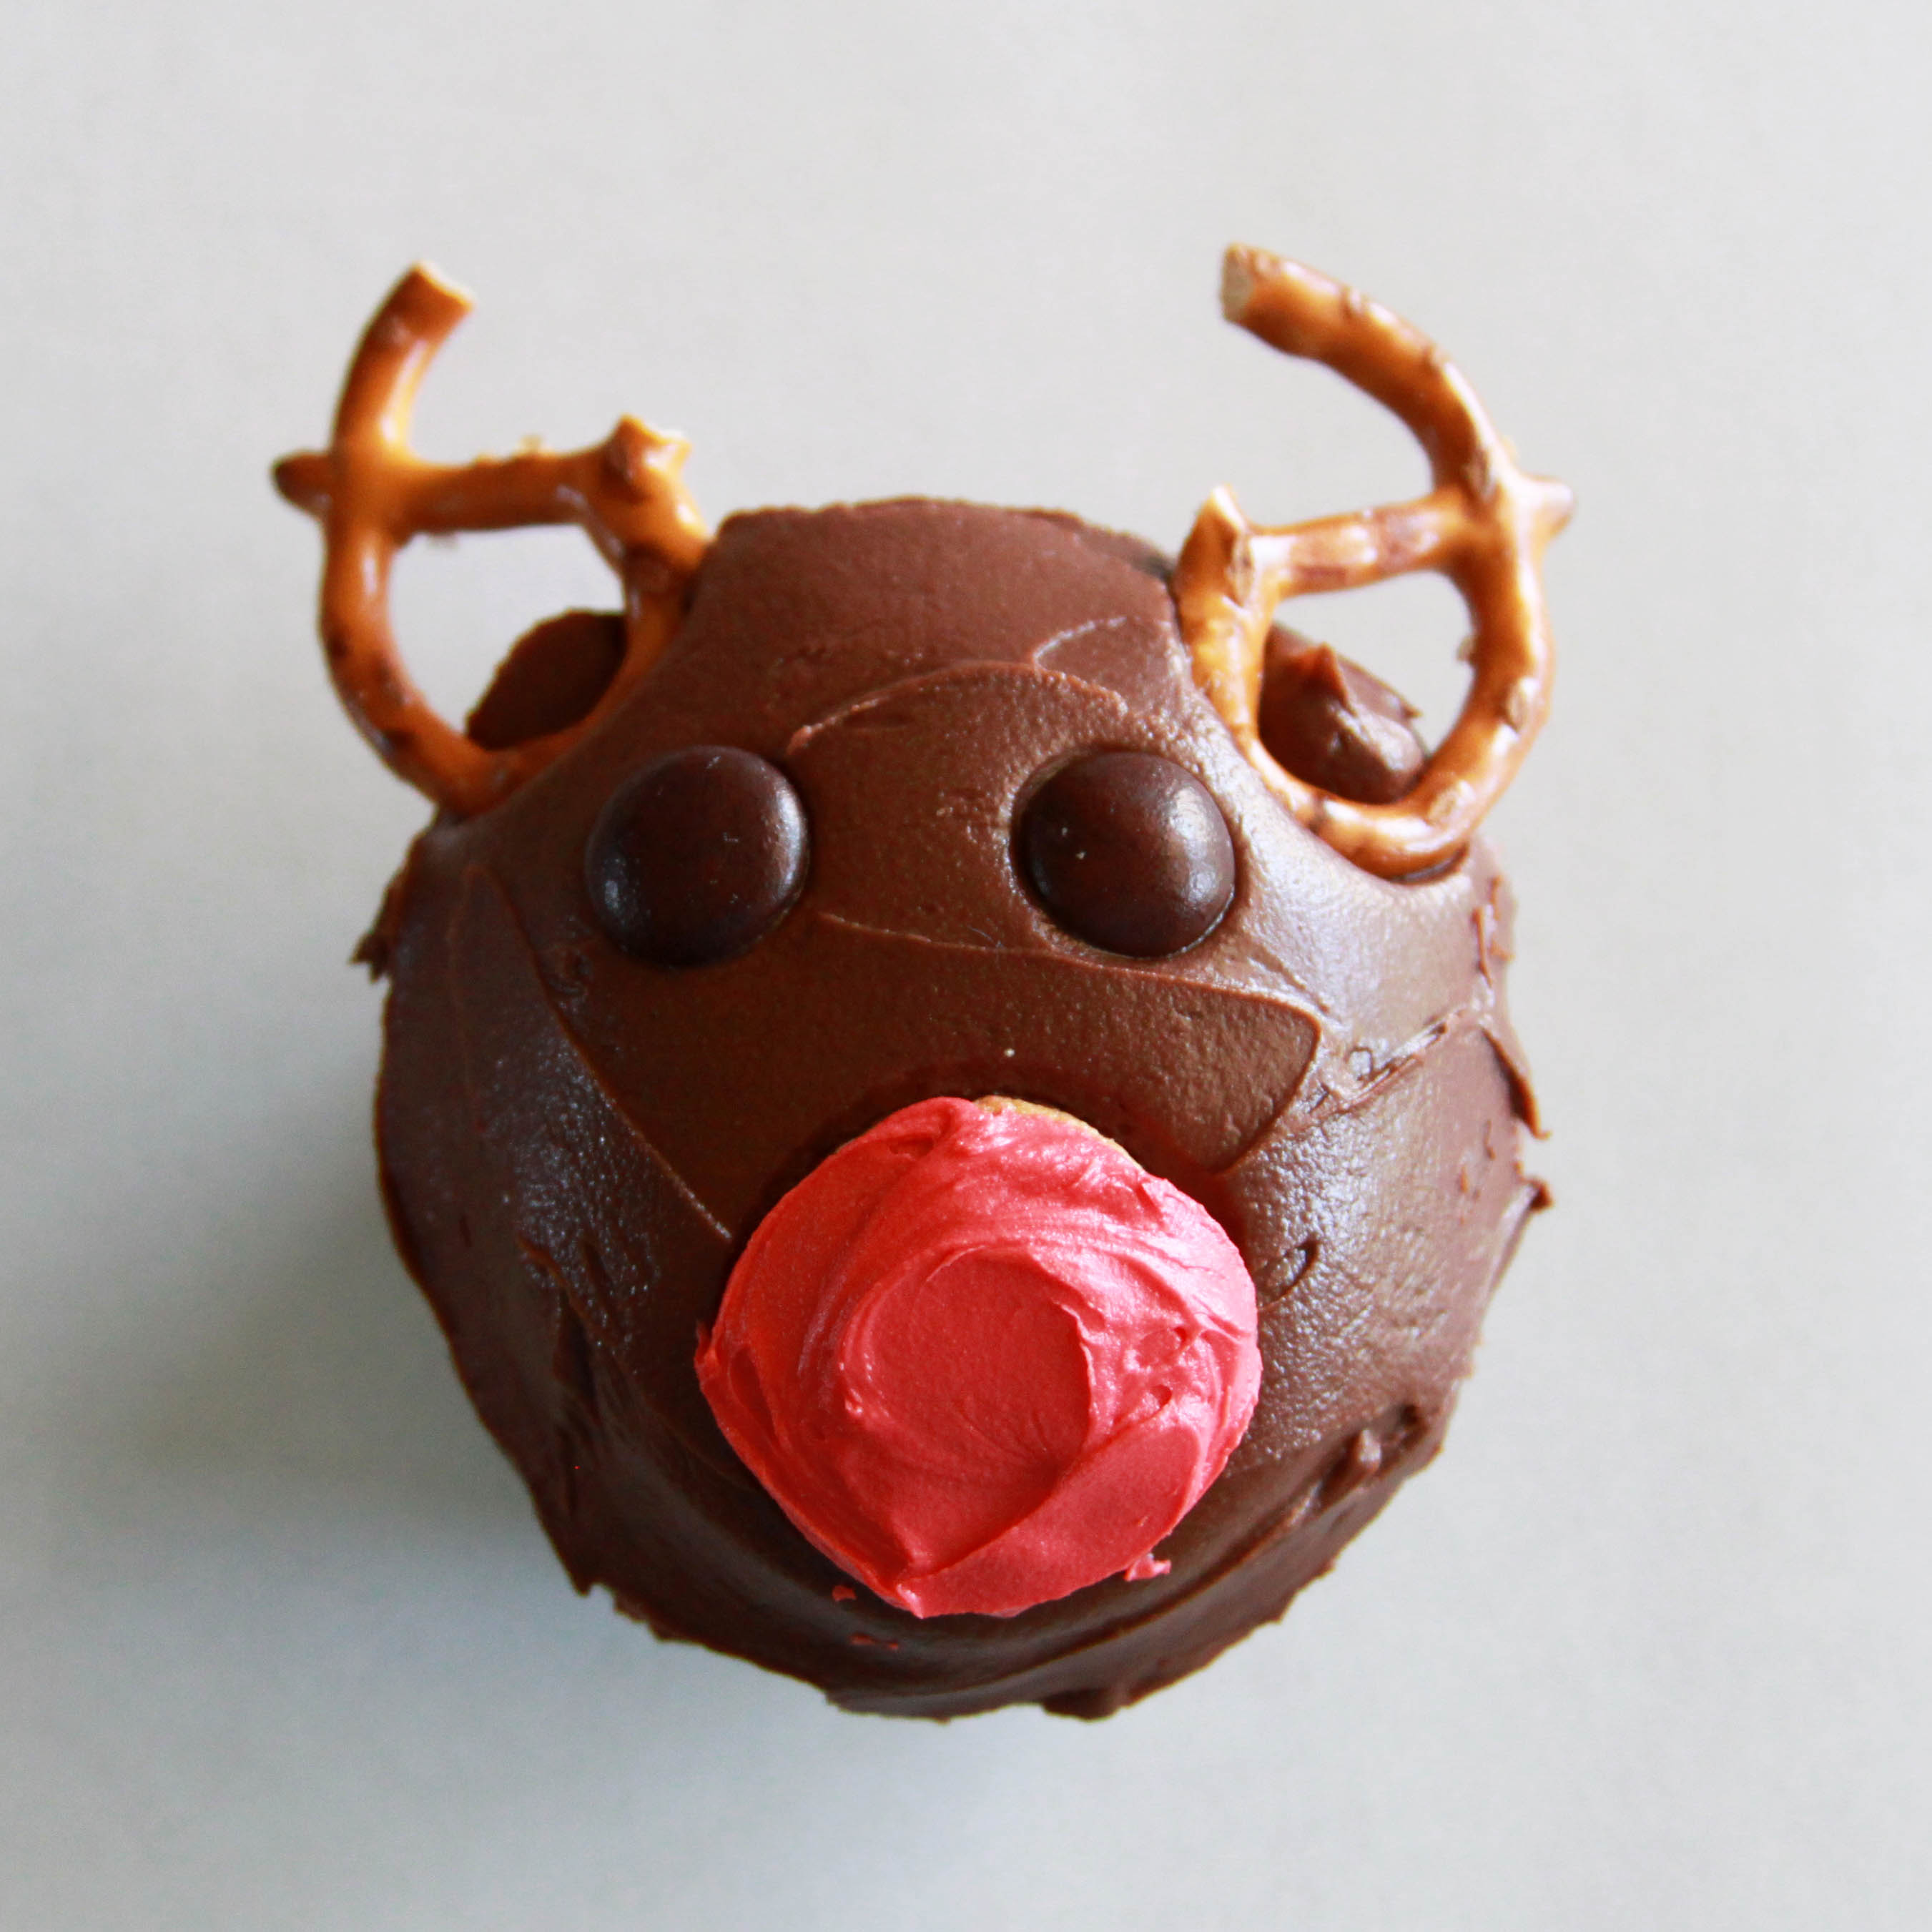 reindeer cupcakes kids can decorate - rudolph cupcake